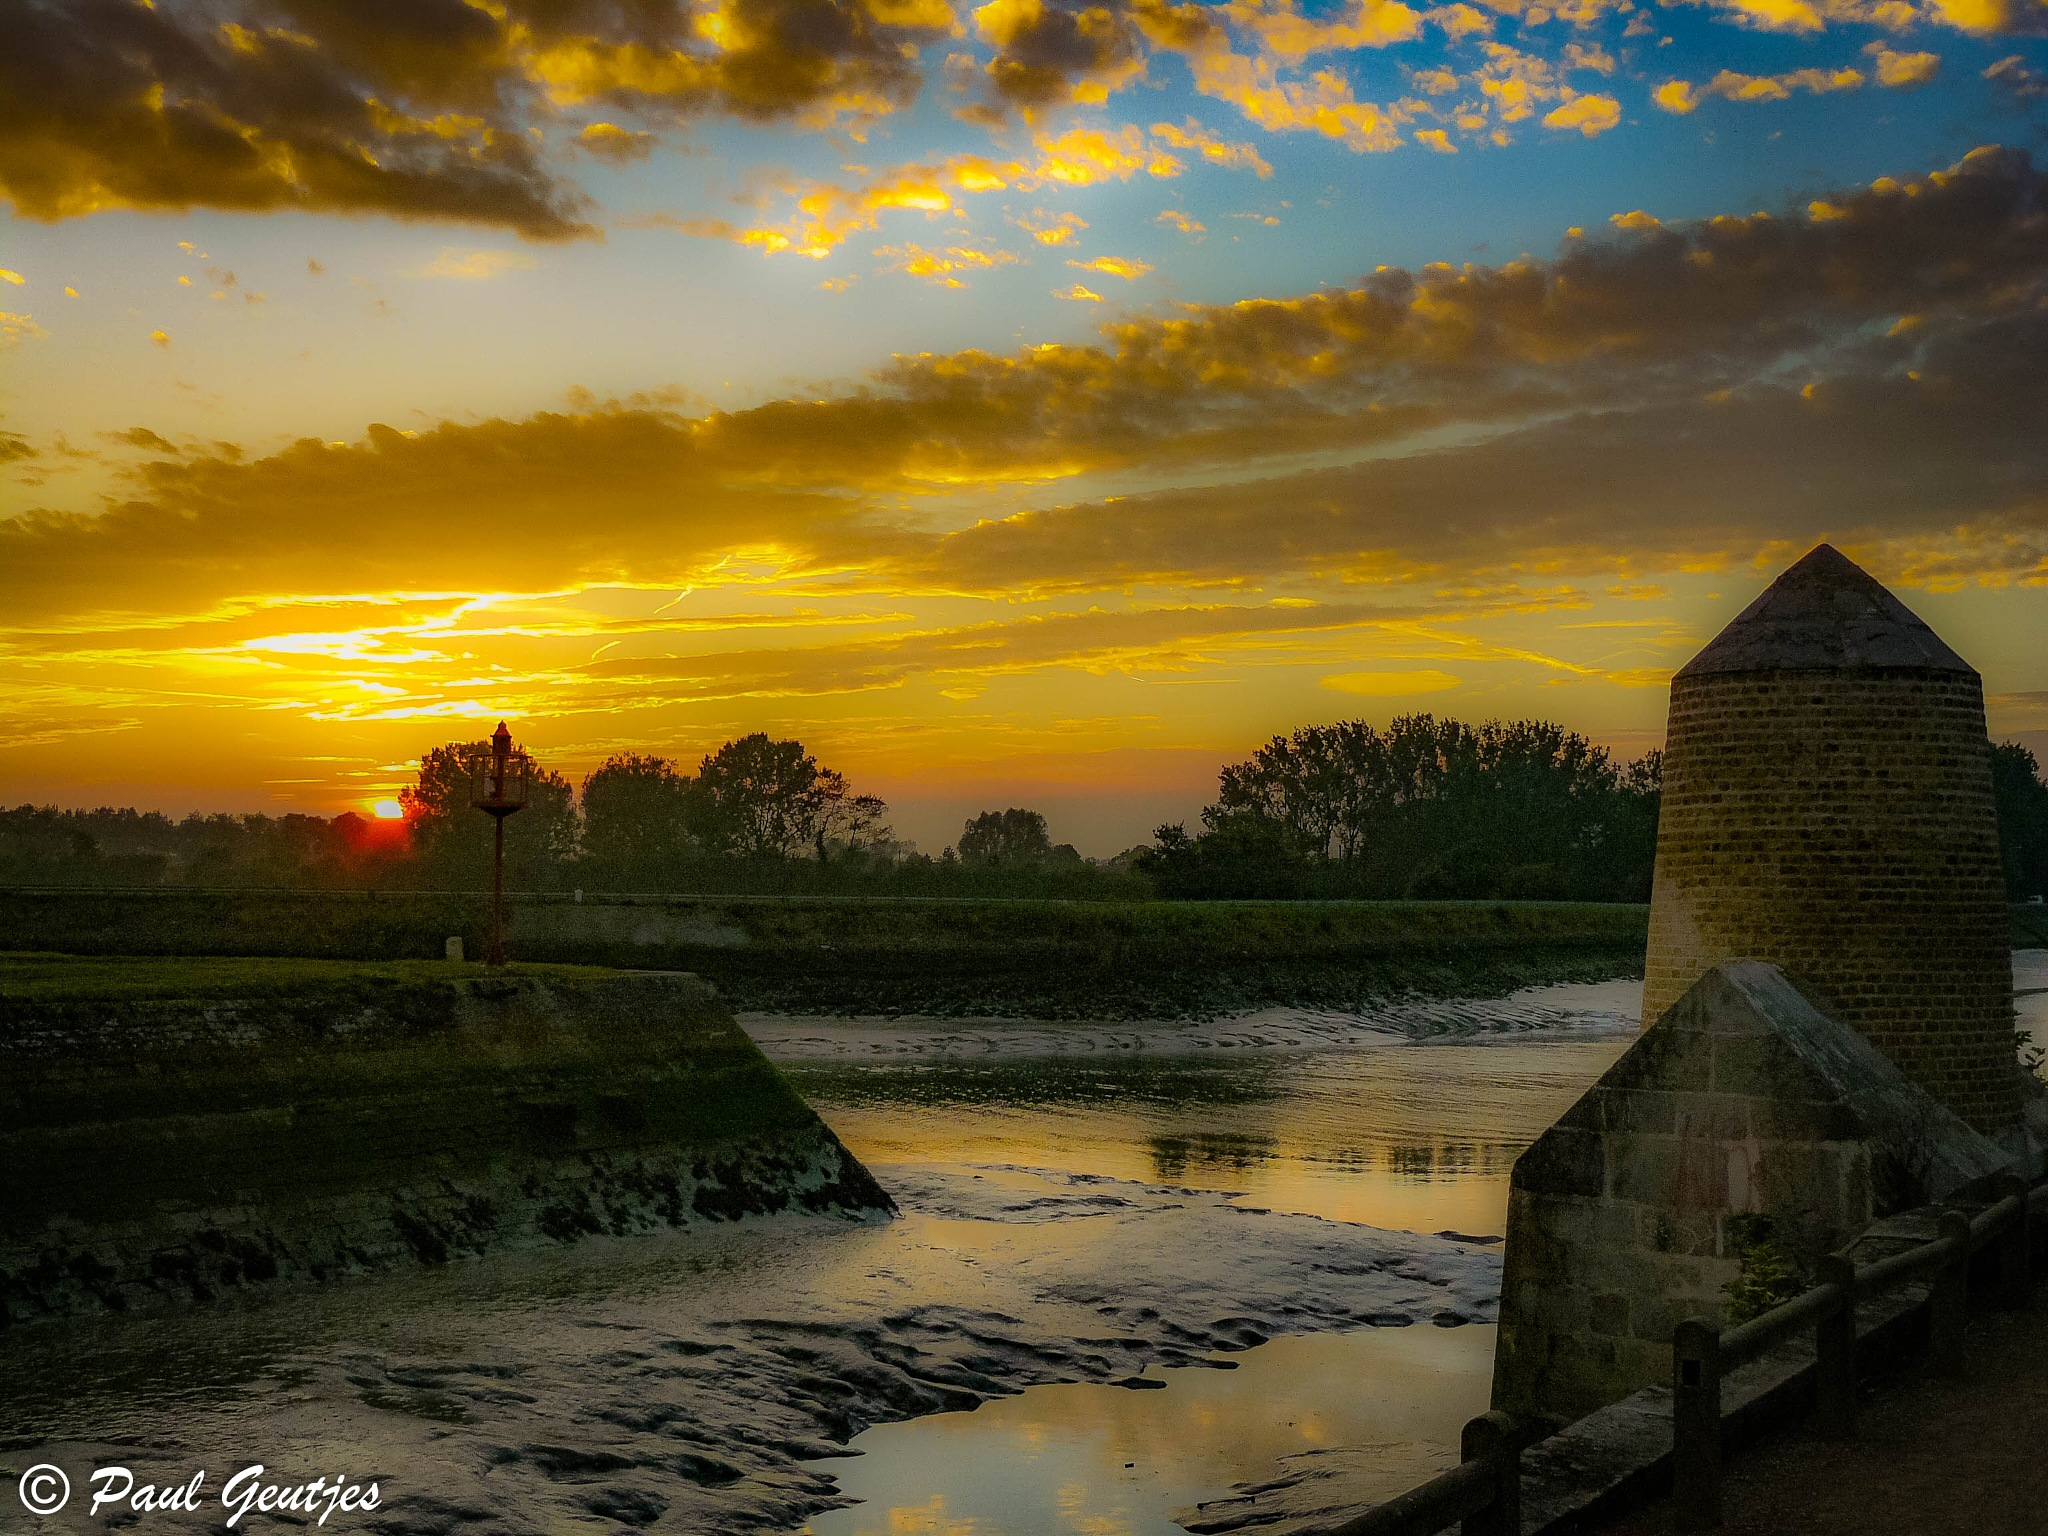 Sunset at Gravelines by Paul Geutjes